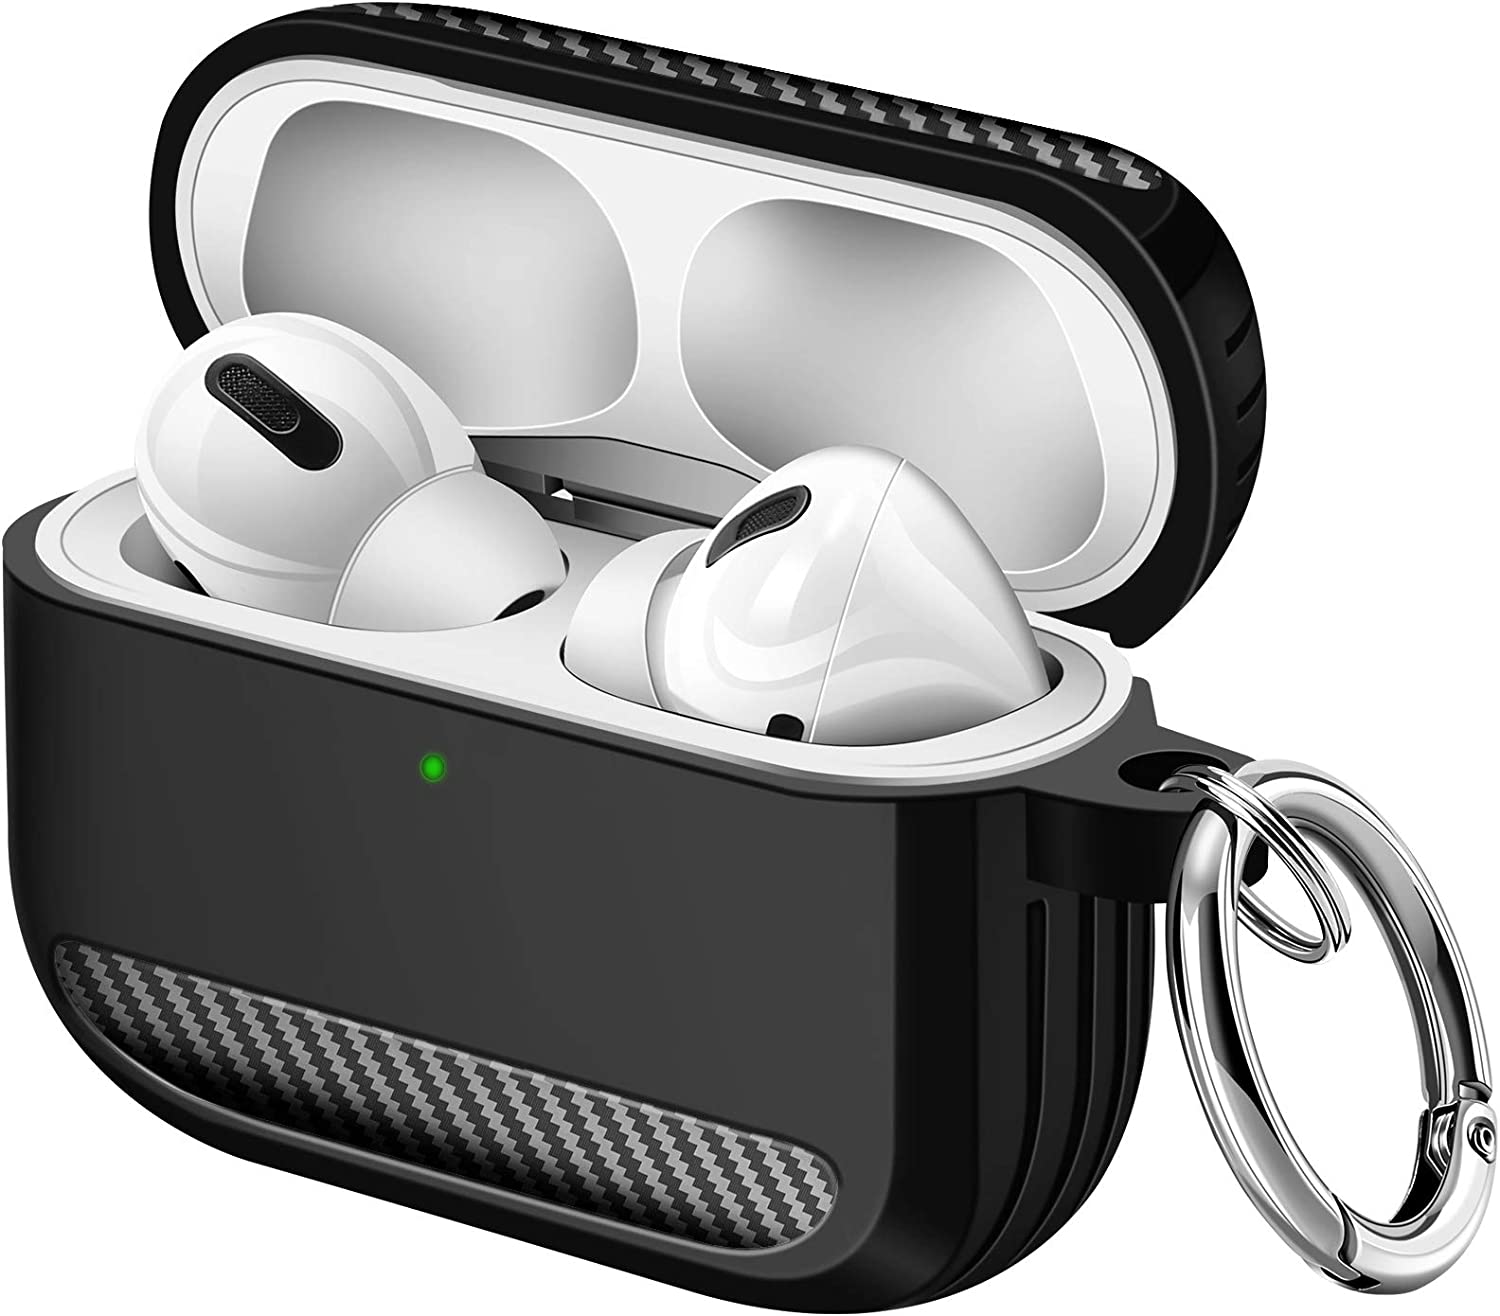 Maxjoy Airpods Pro Case Carbon Fiber Full Body Rugged Protective Case Shockproof Airpod Case Wireless Airpods Case Cover with Carabiner for Apple Airpod Pro Charging Case (Black)